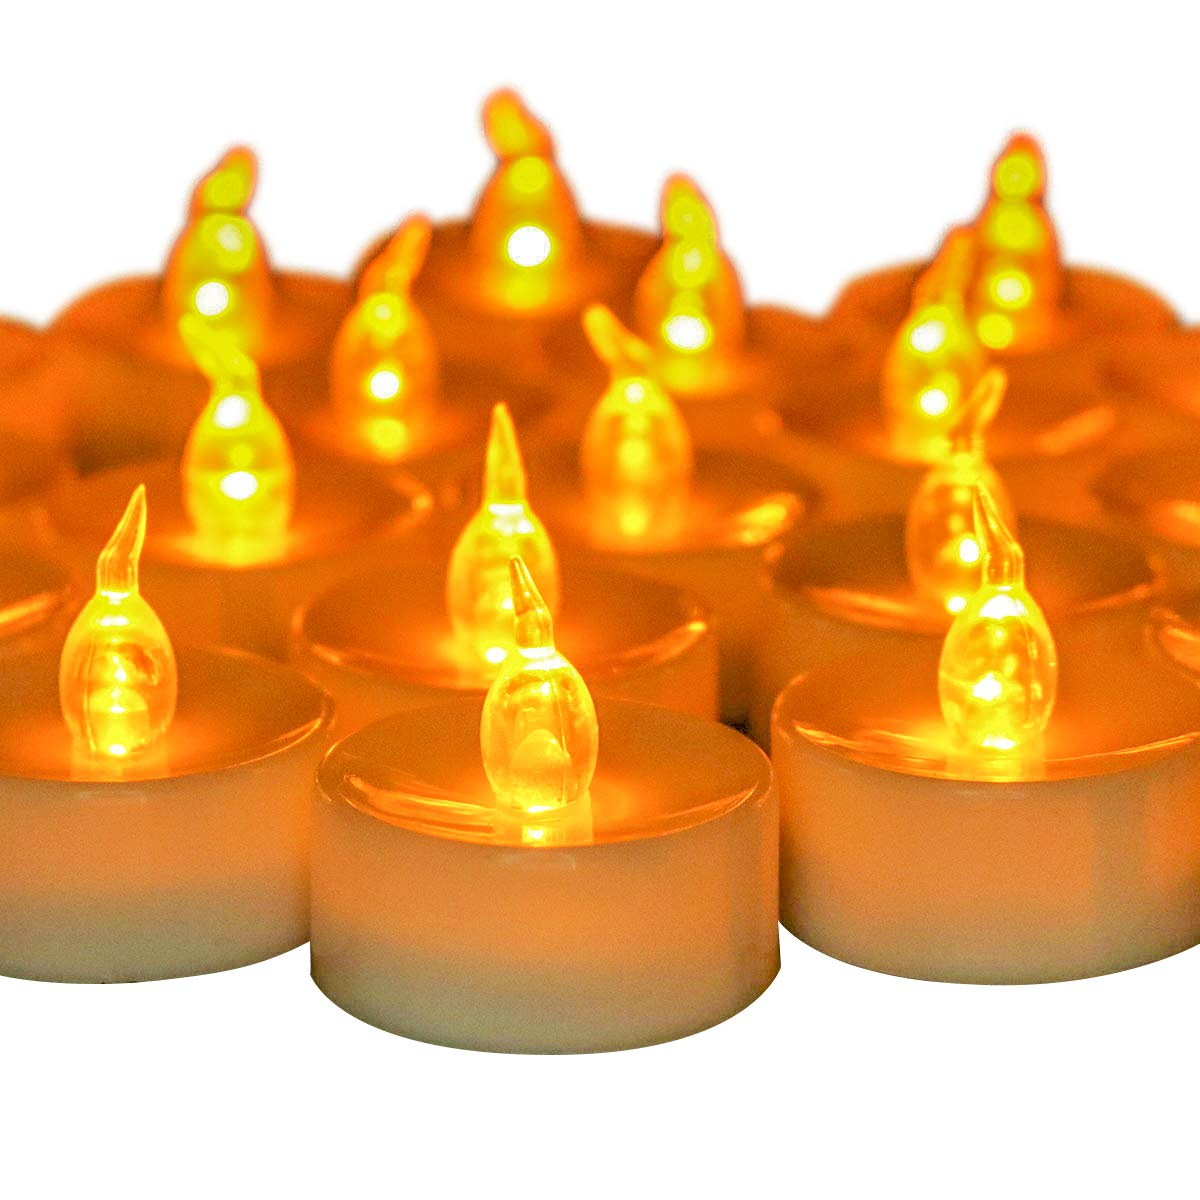 Youngerbaby 24 PCS Battery Operated Tea Lights Flameless Flickering Amber LED Tea Lights for Wedding Centerpieces Home Decorations Birthday Party, Long Lasting,White Base by Youngerbaby